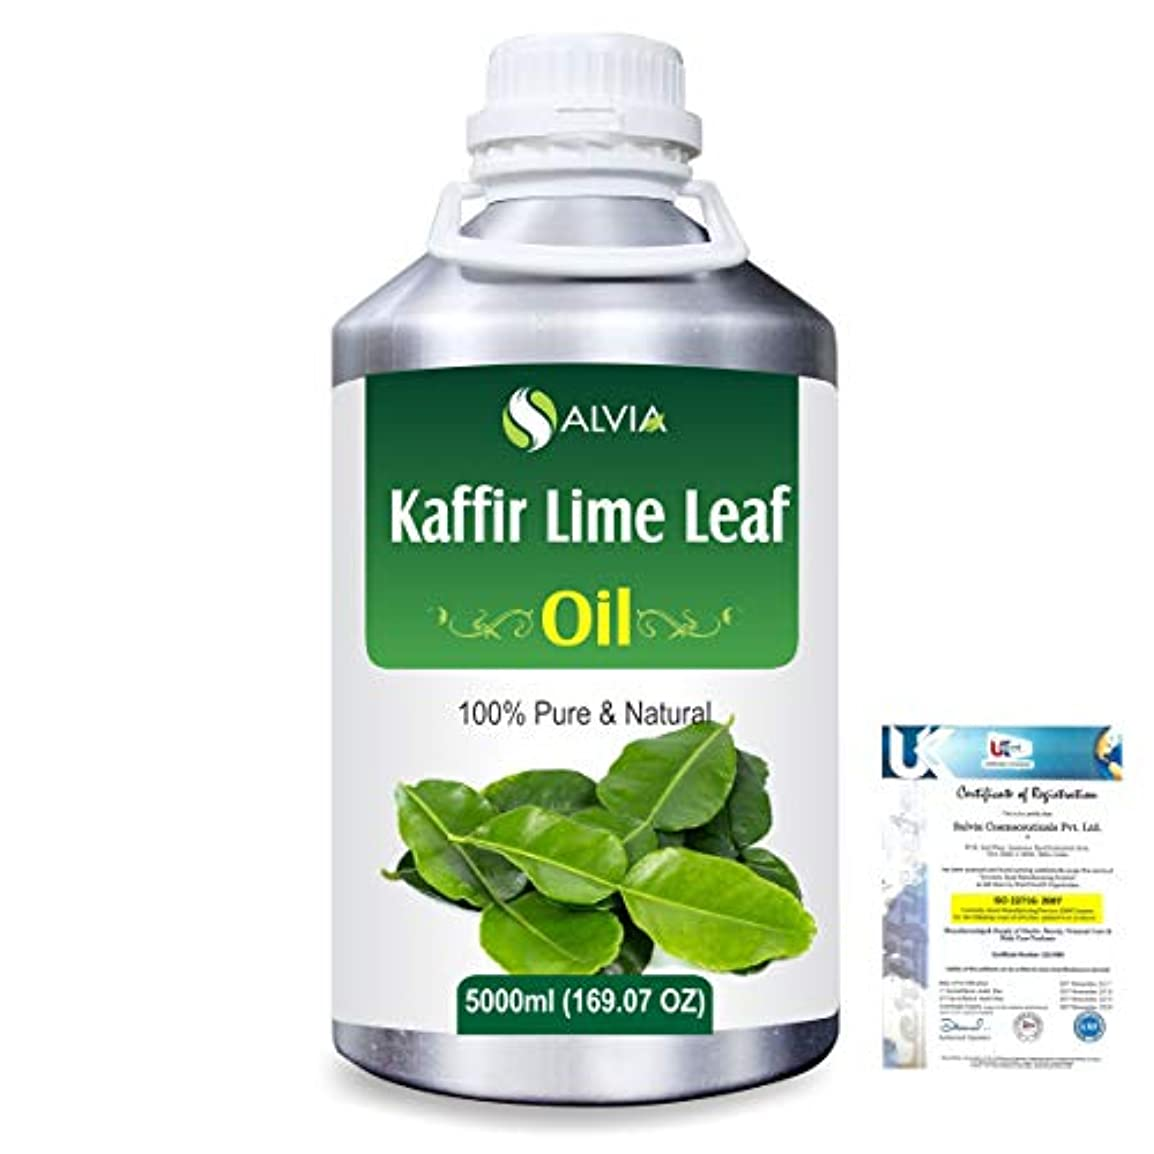 伝染性の眠いです舗装Kaffir Lime Leaf (Citrus Hystrix) 100% Natural Pure Essential Oil 5000ml/169fl.oz.